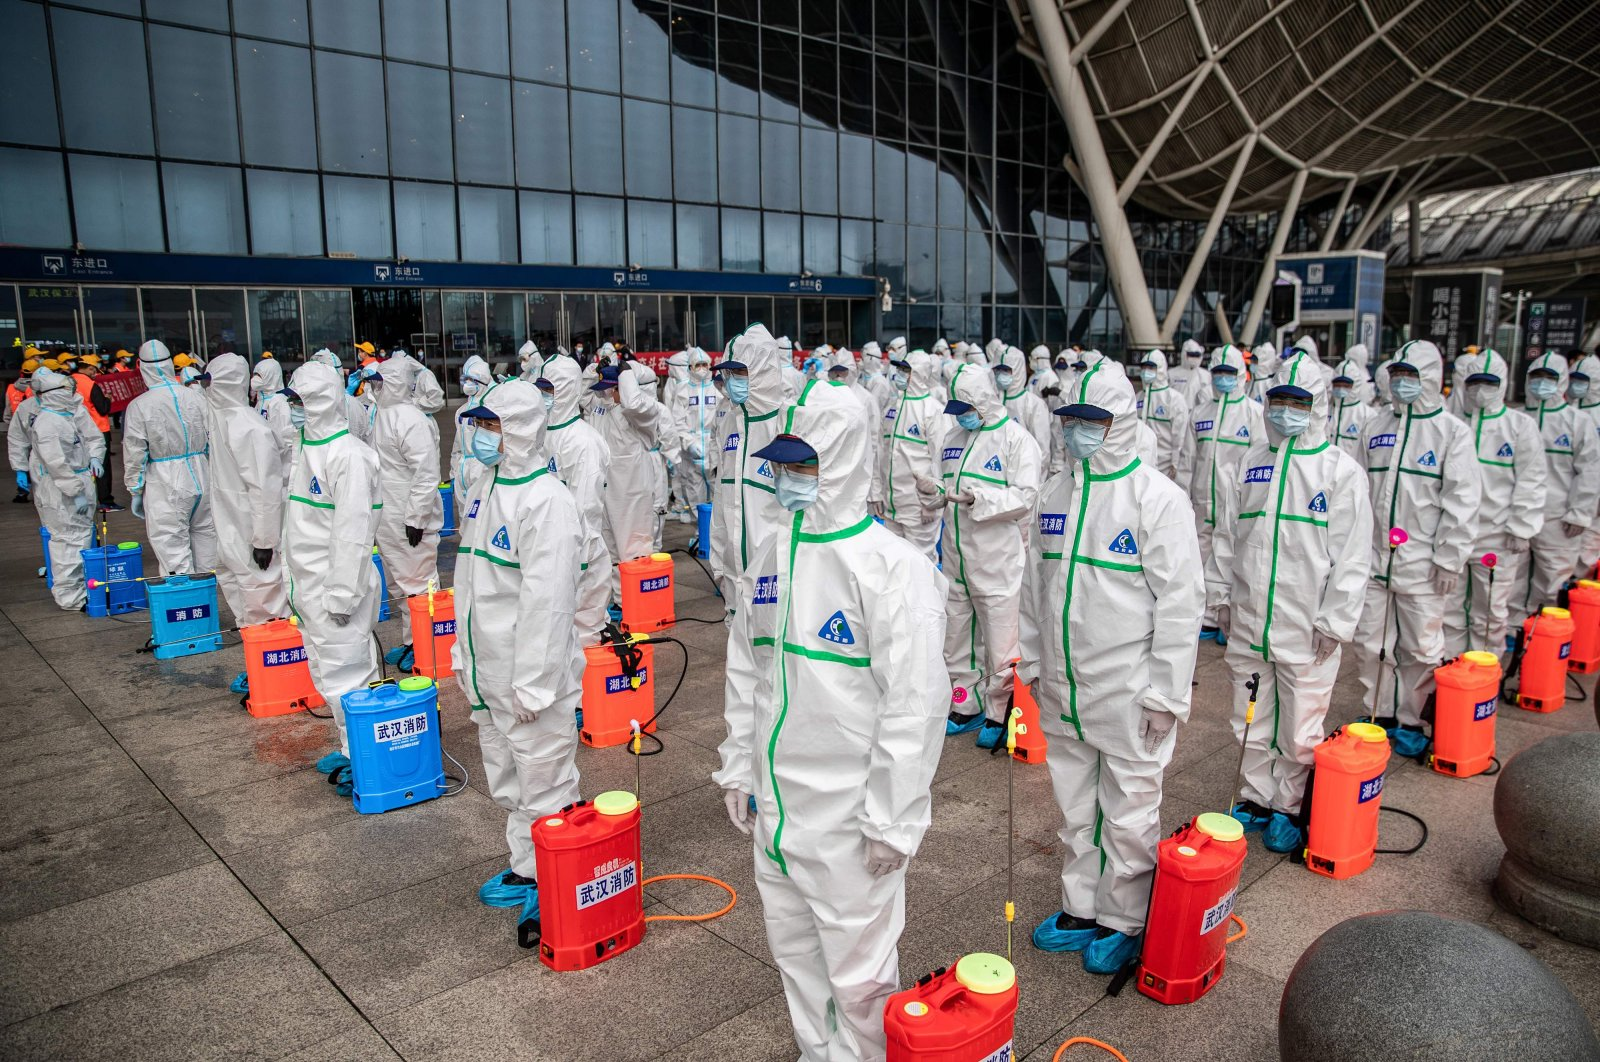 Staff members line up at attention as they prepare to spray disinfectant at Wuhan Railway Station, Wuhan, March 24, 2020. (AFP Photo)